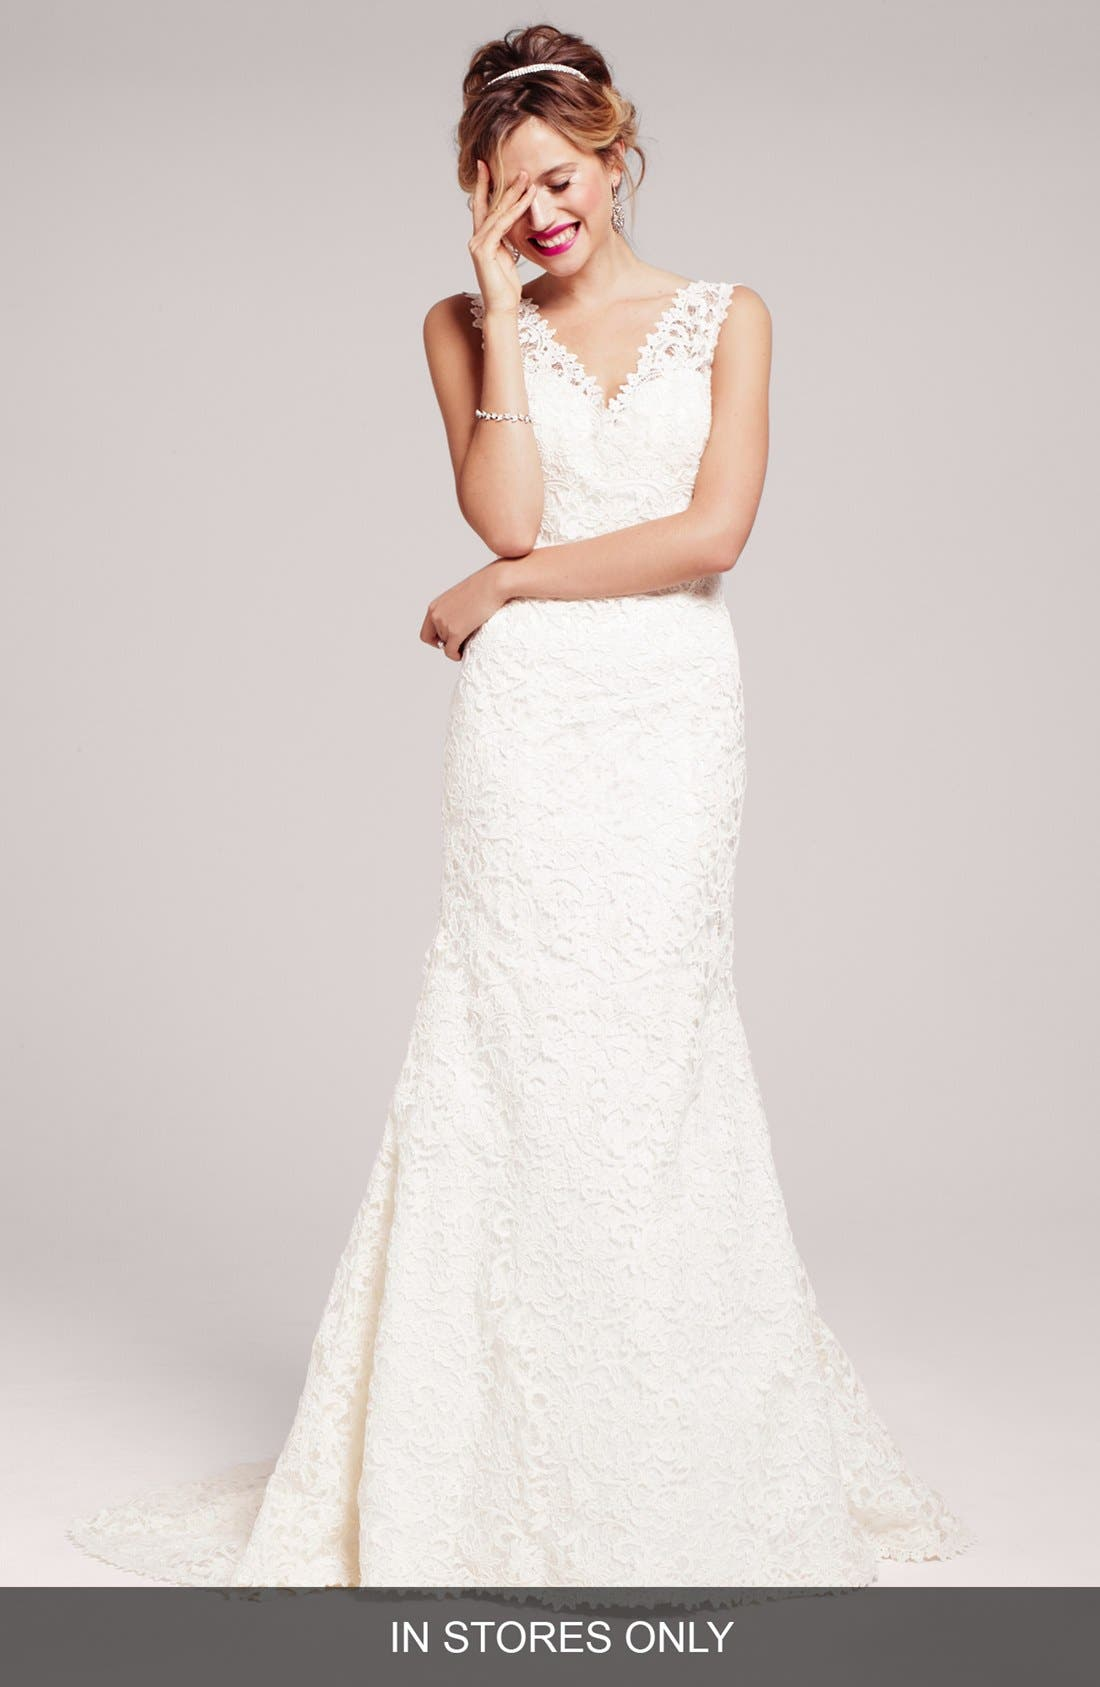 Alternate Image 1 Selected - Two by Rosa Clara 'Dakota' Lace Trumpet Wedding Dress (In Stores Only)